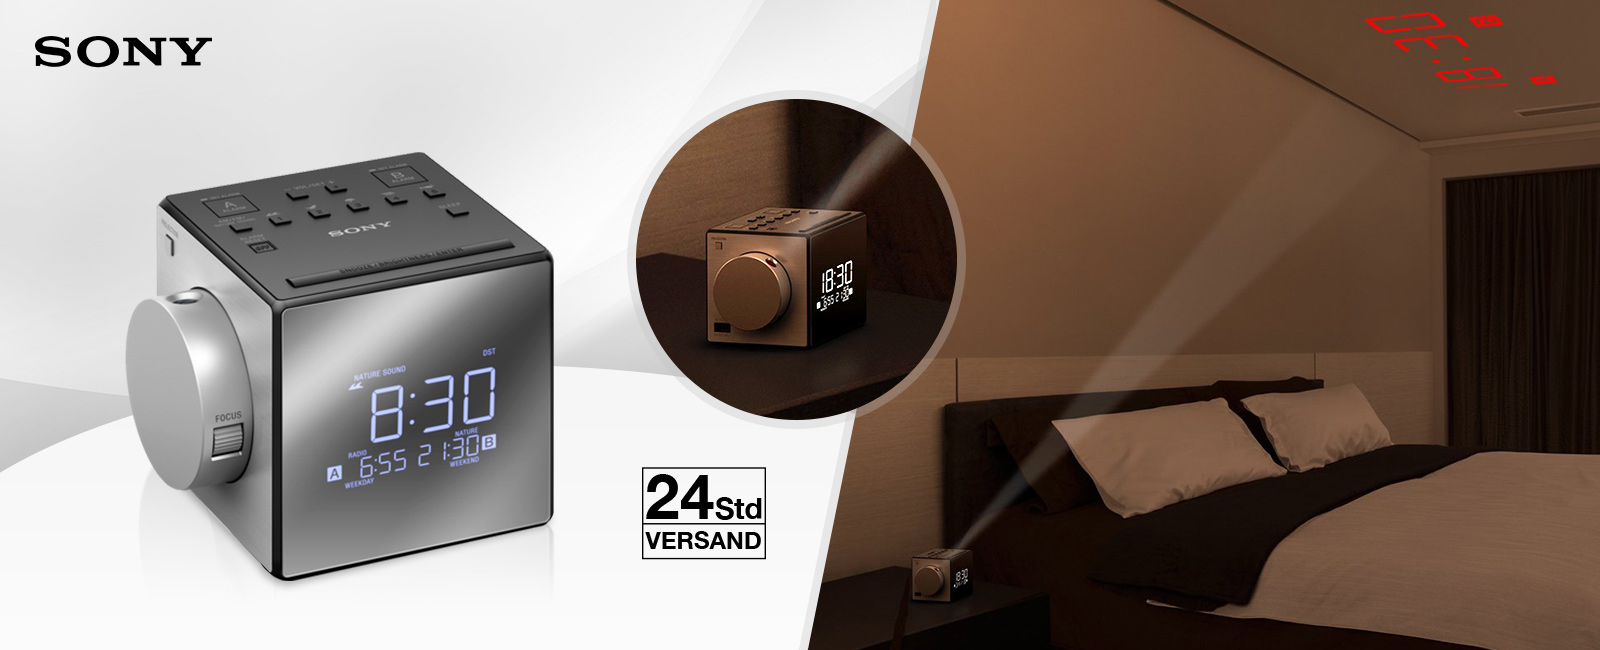 sony icf c1pj uhrenradio mit zeitprojektor. Black Bedroom Furniture Sets. Home Design Ideas